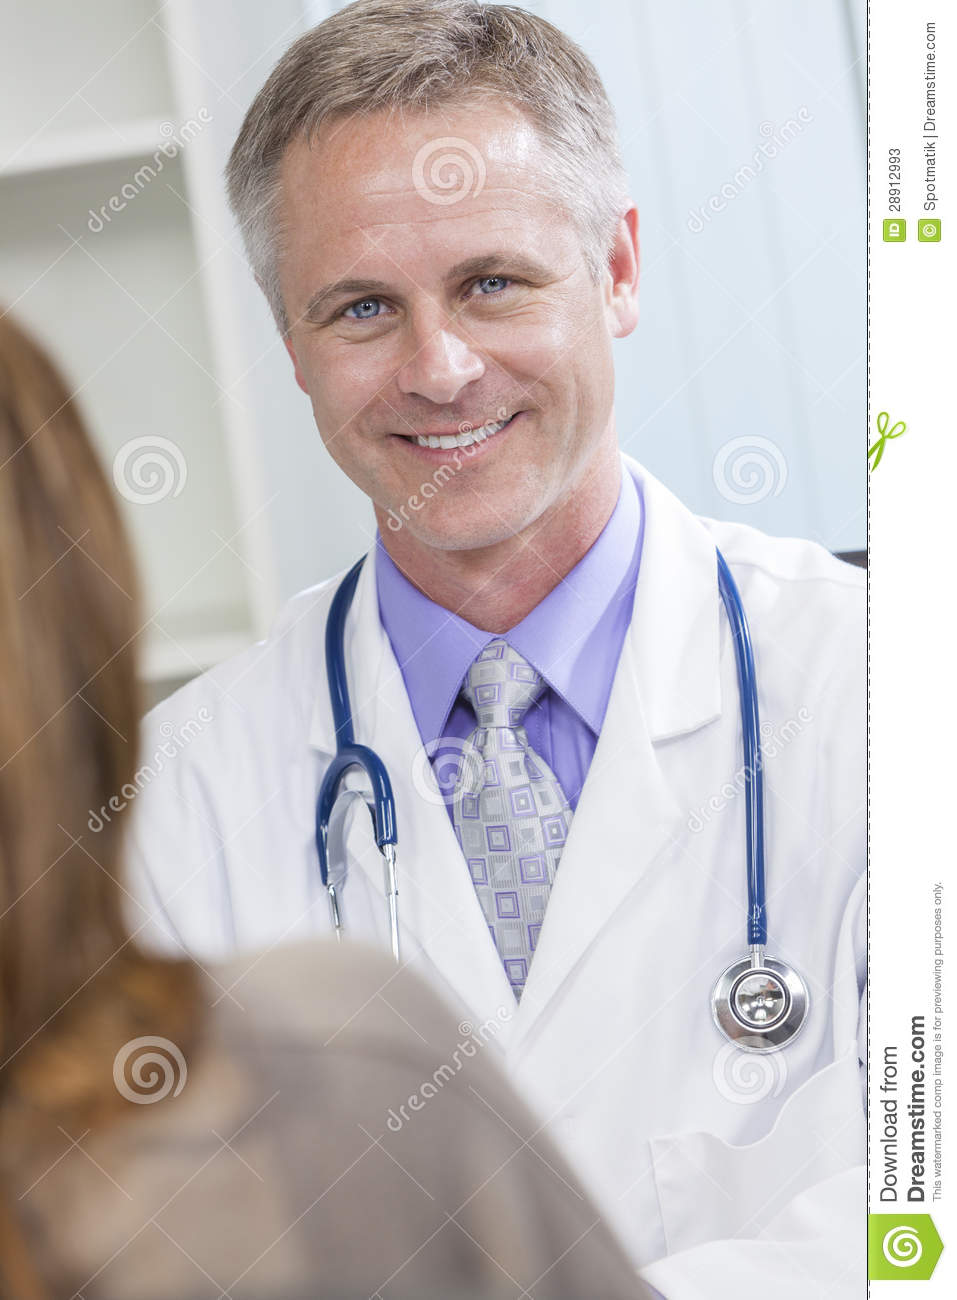 Male medical doctor talking to a female patient in a hospital office.